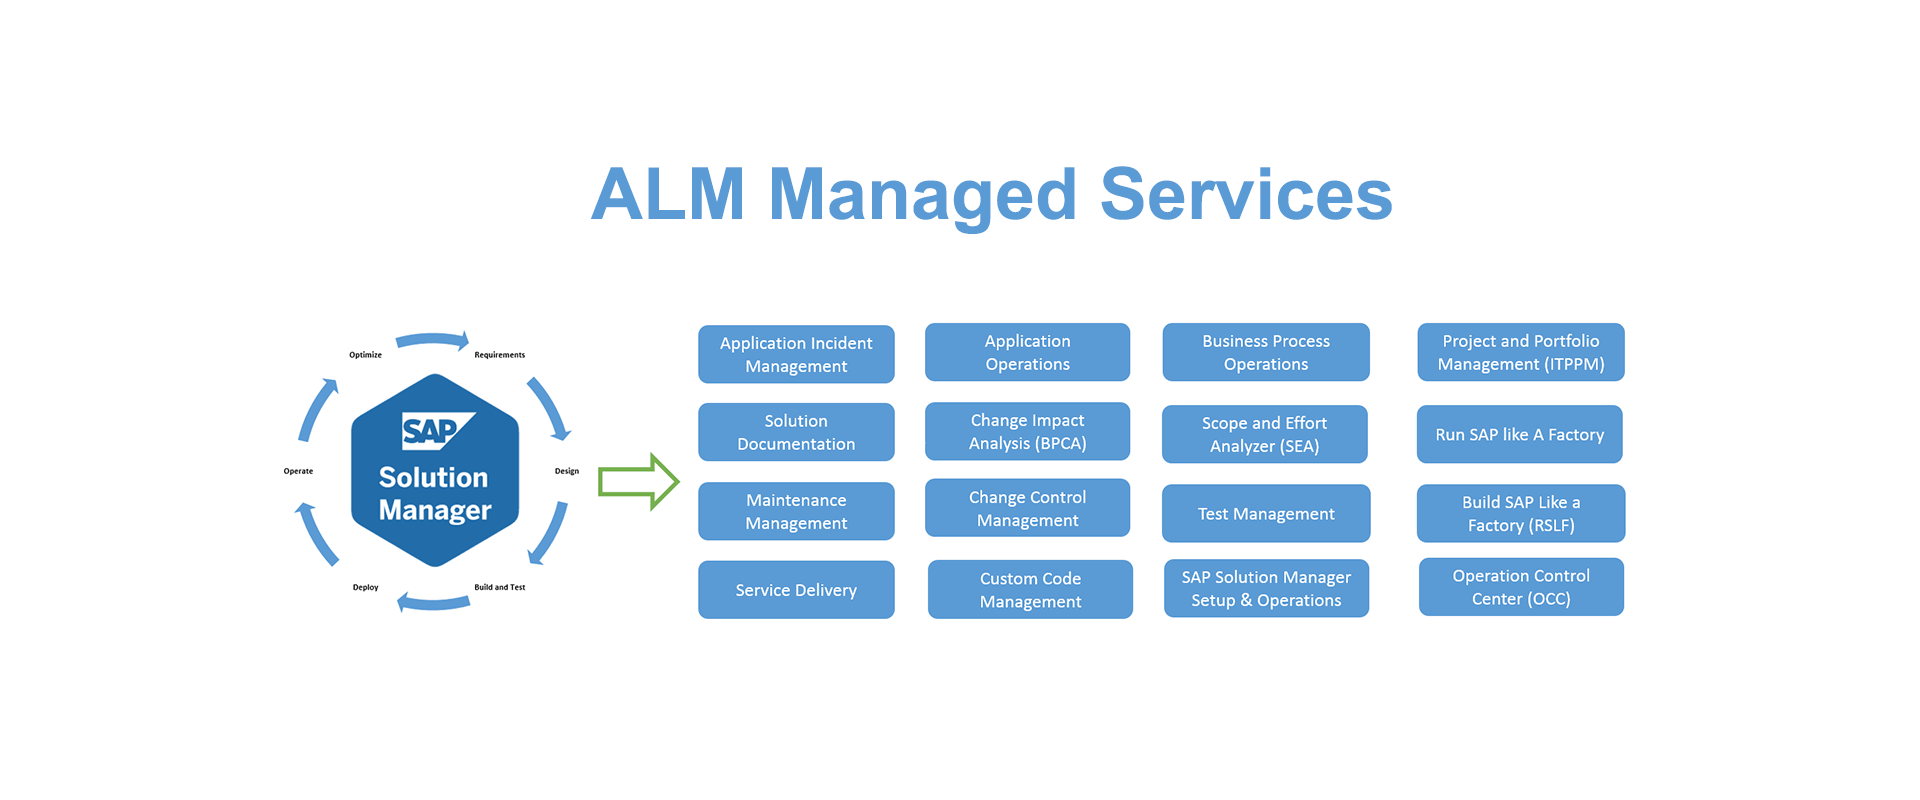 SAP ALM Managed Services